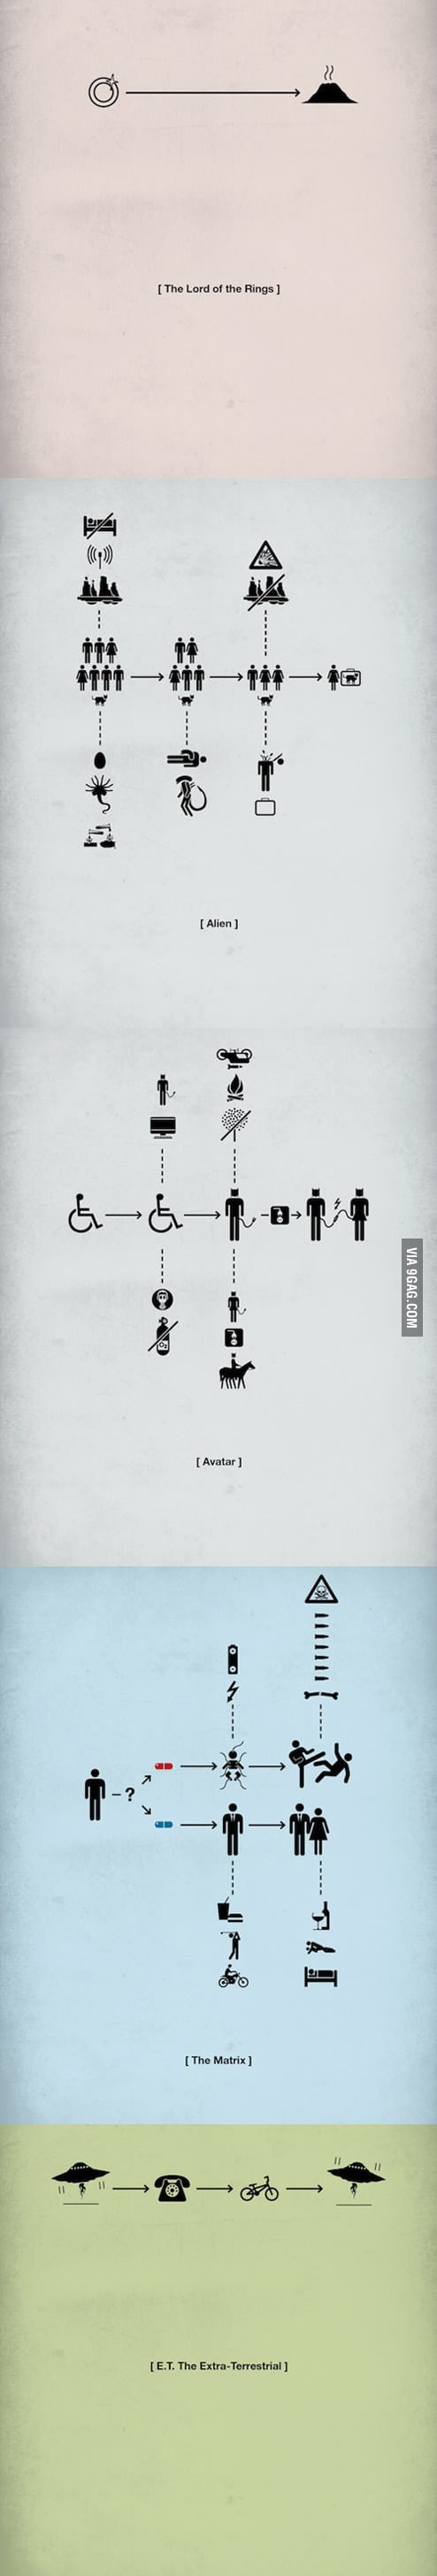 Movies in pictograms